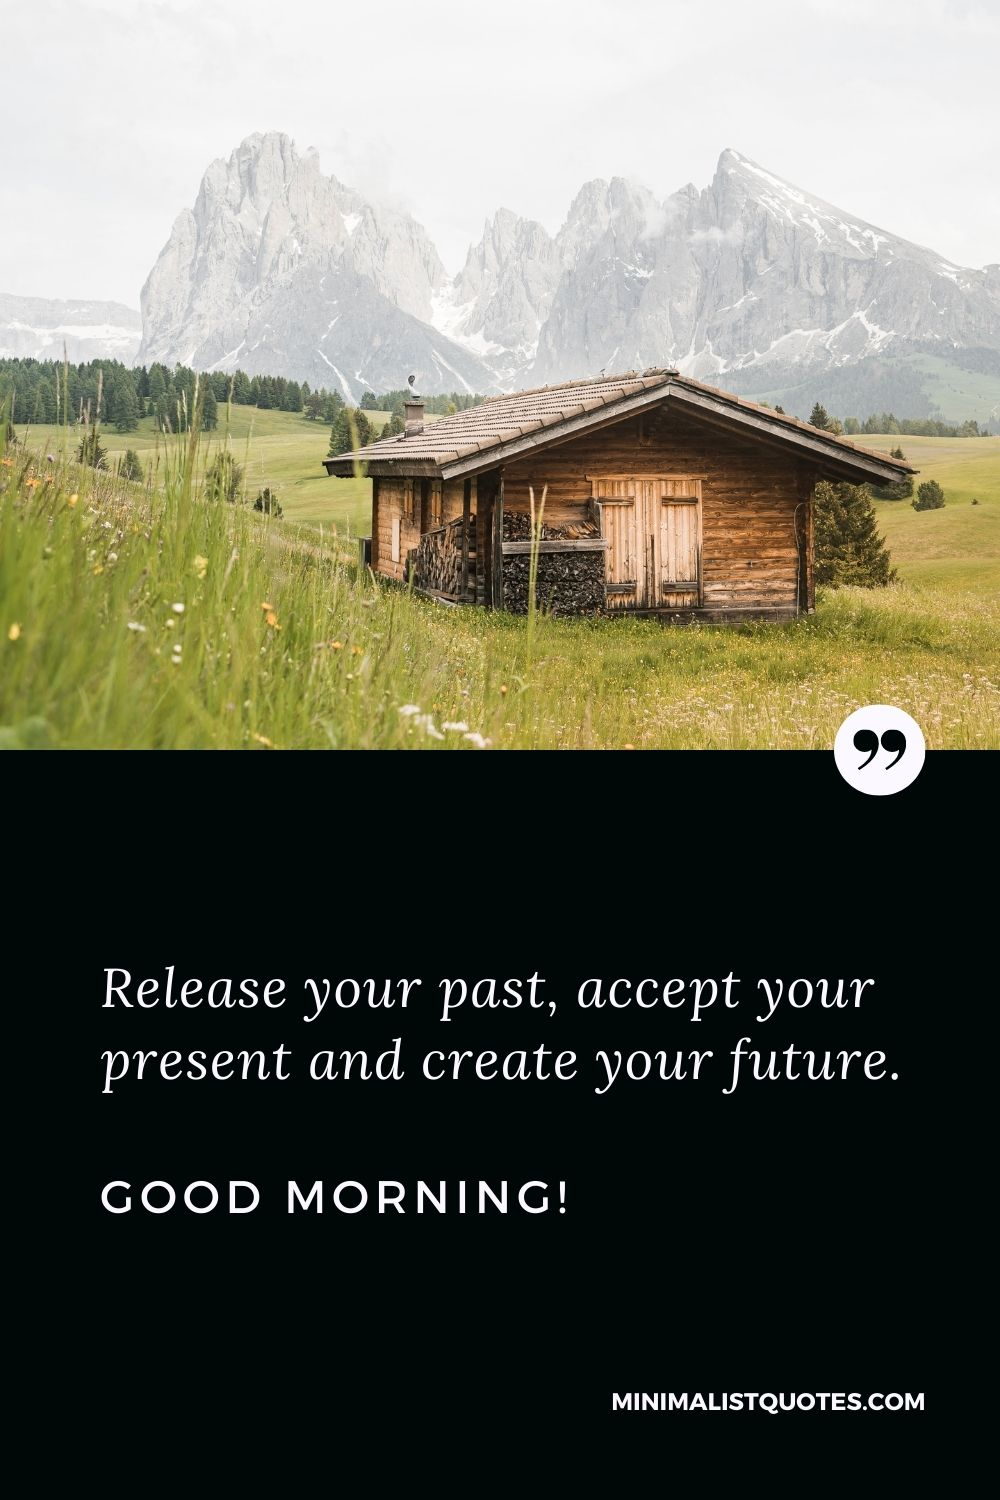 Deep Good morning Message: Release your past, accept your present and create your future. Good Morning!